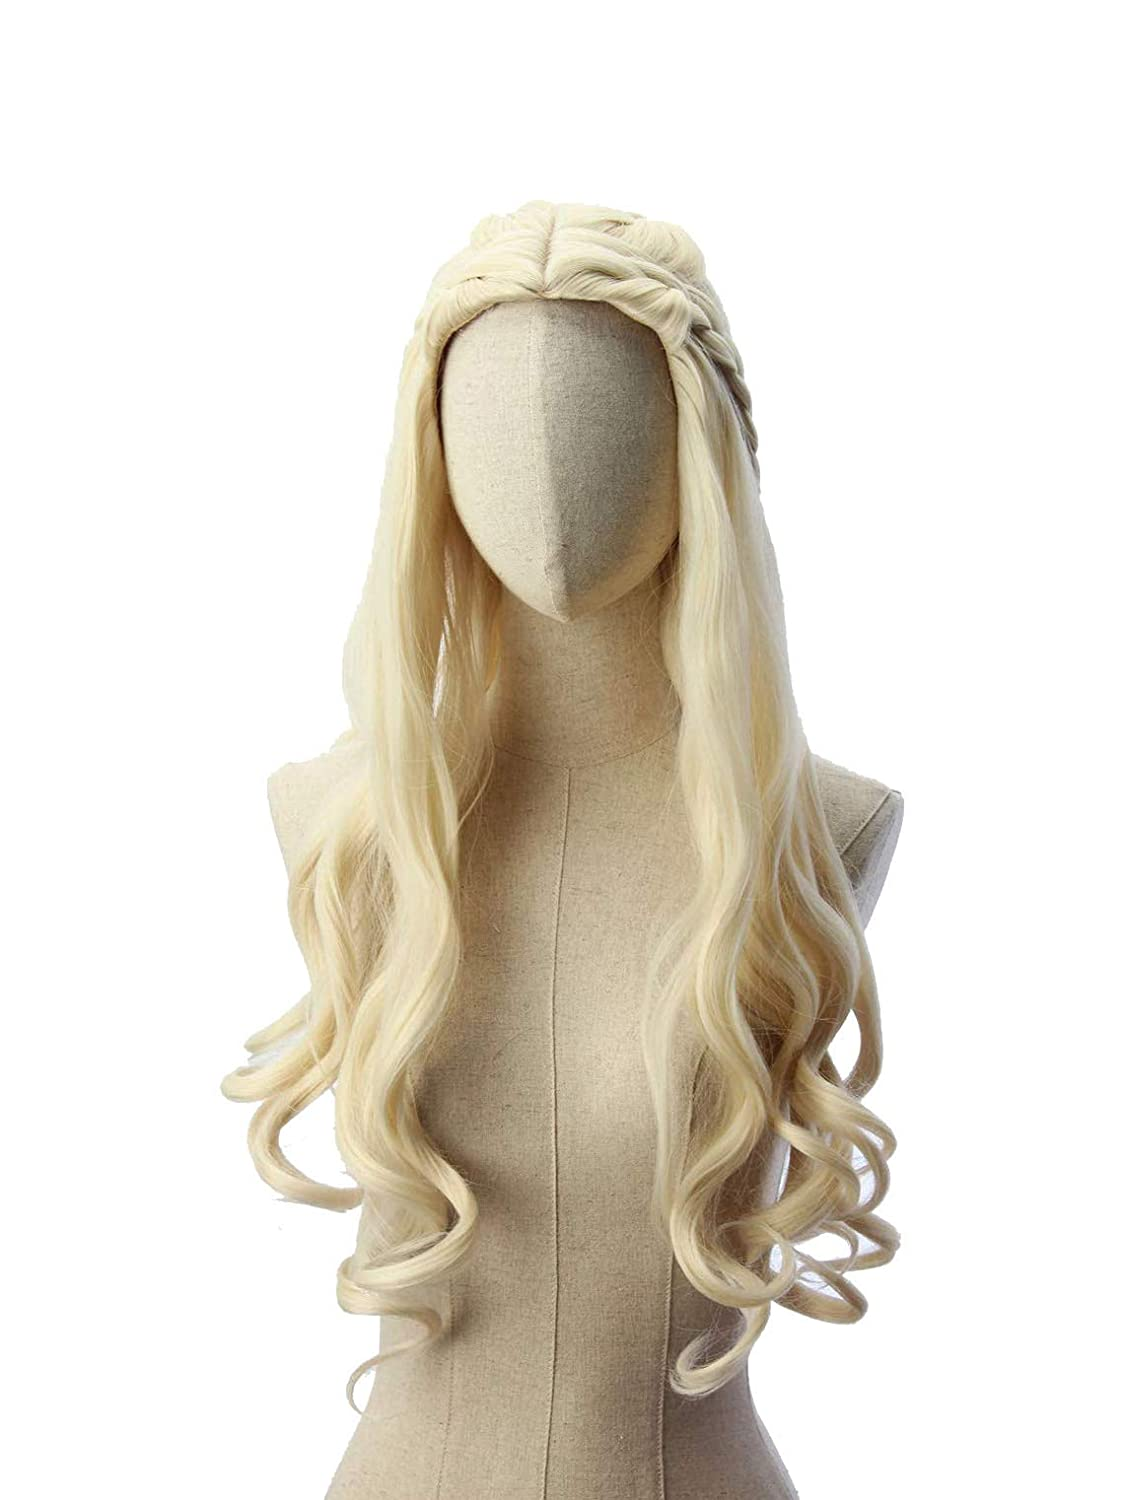 unisex HANGCosplay Free shipping on posting reviews Long Curly Wavy Blond Wig for and Costume Dail Party